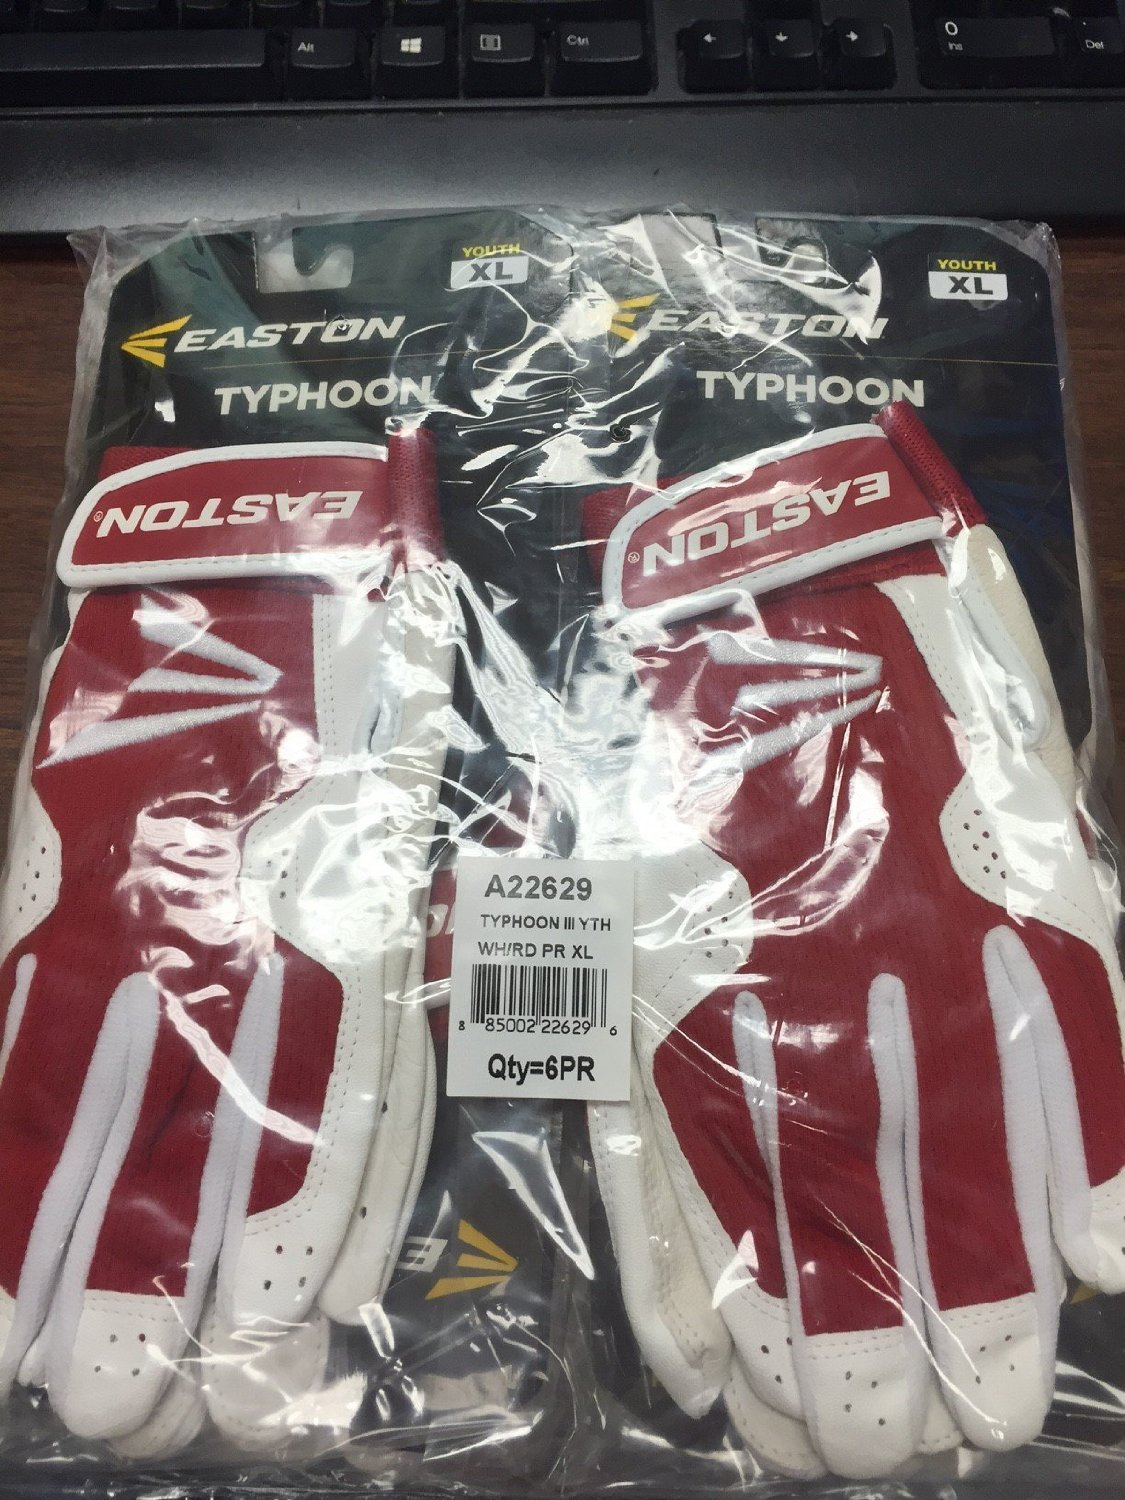 Easton Typhoon III Batting Gloves Baseball/Softball White/Red 6 Pack(pair)